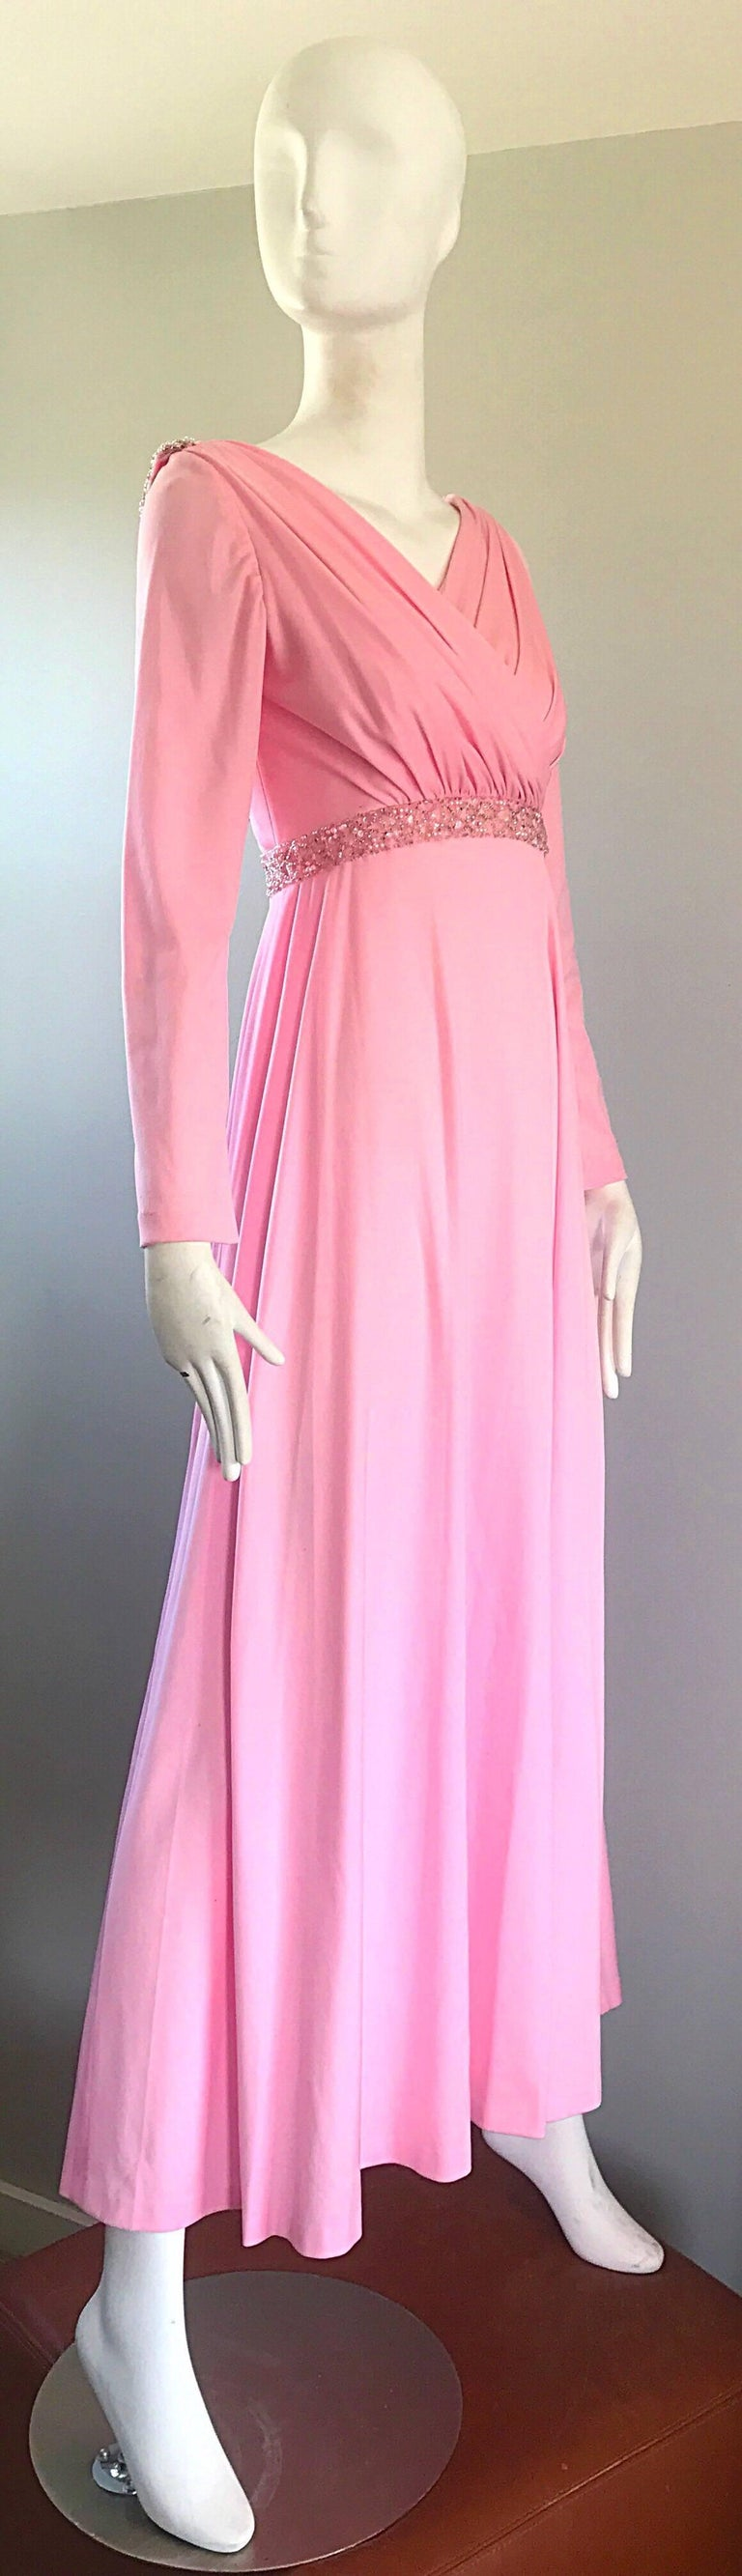 Amazing 1970s Light Pink Grecian Sequined and Beaded Long Sleeve Maxi Dress Gown For Sale 4